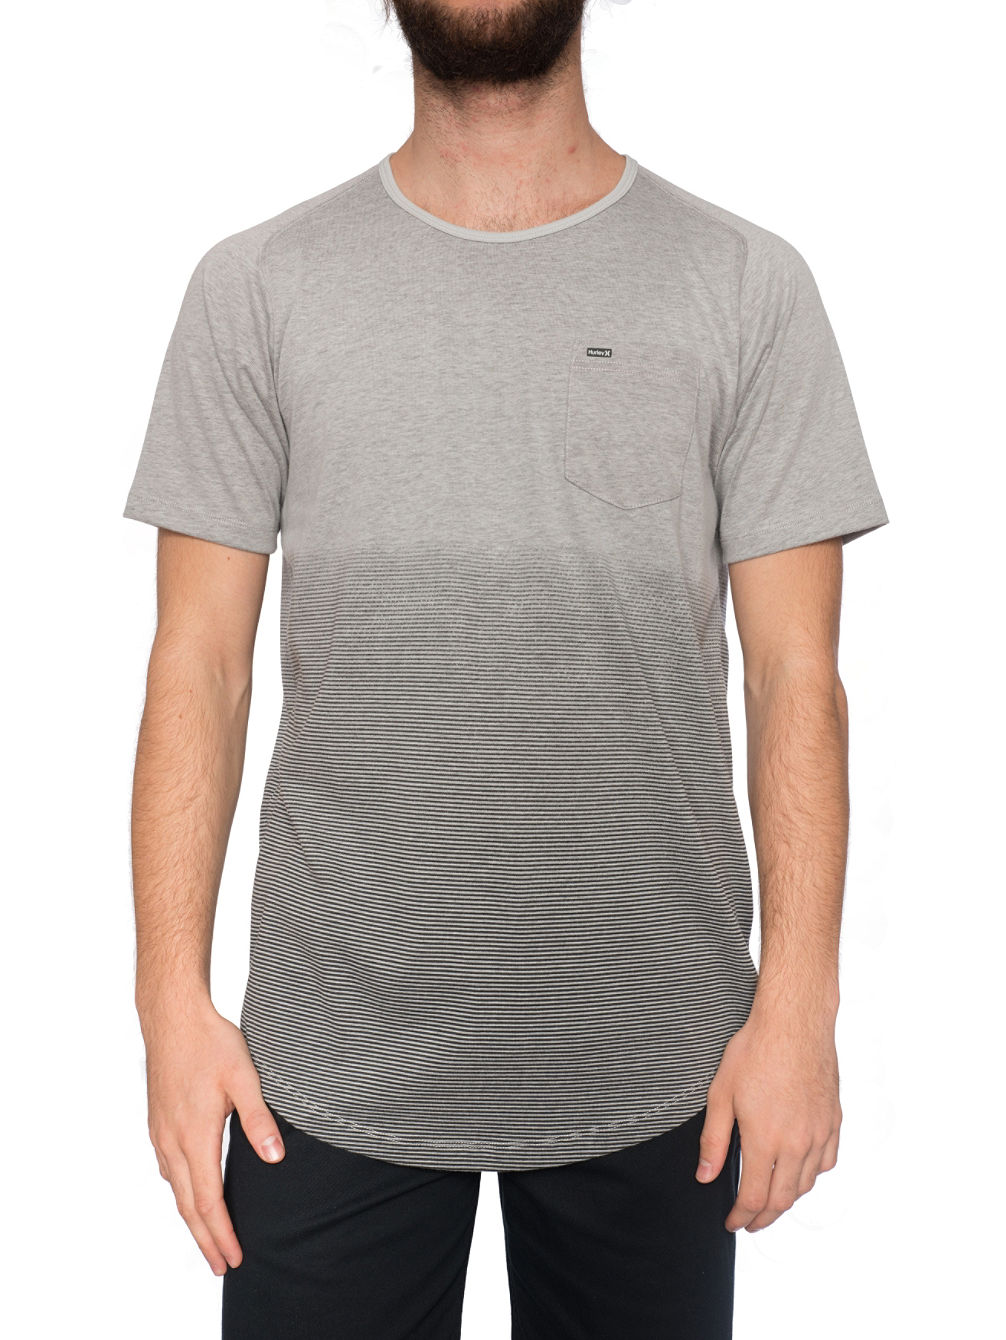 Buy hurley dri fit lagos fade crew t shirt online at blue for Buy dri fit shirts